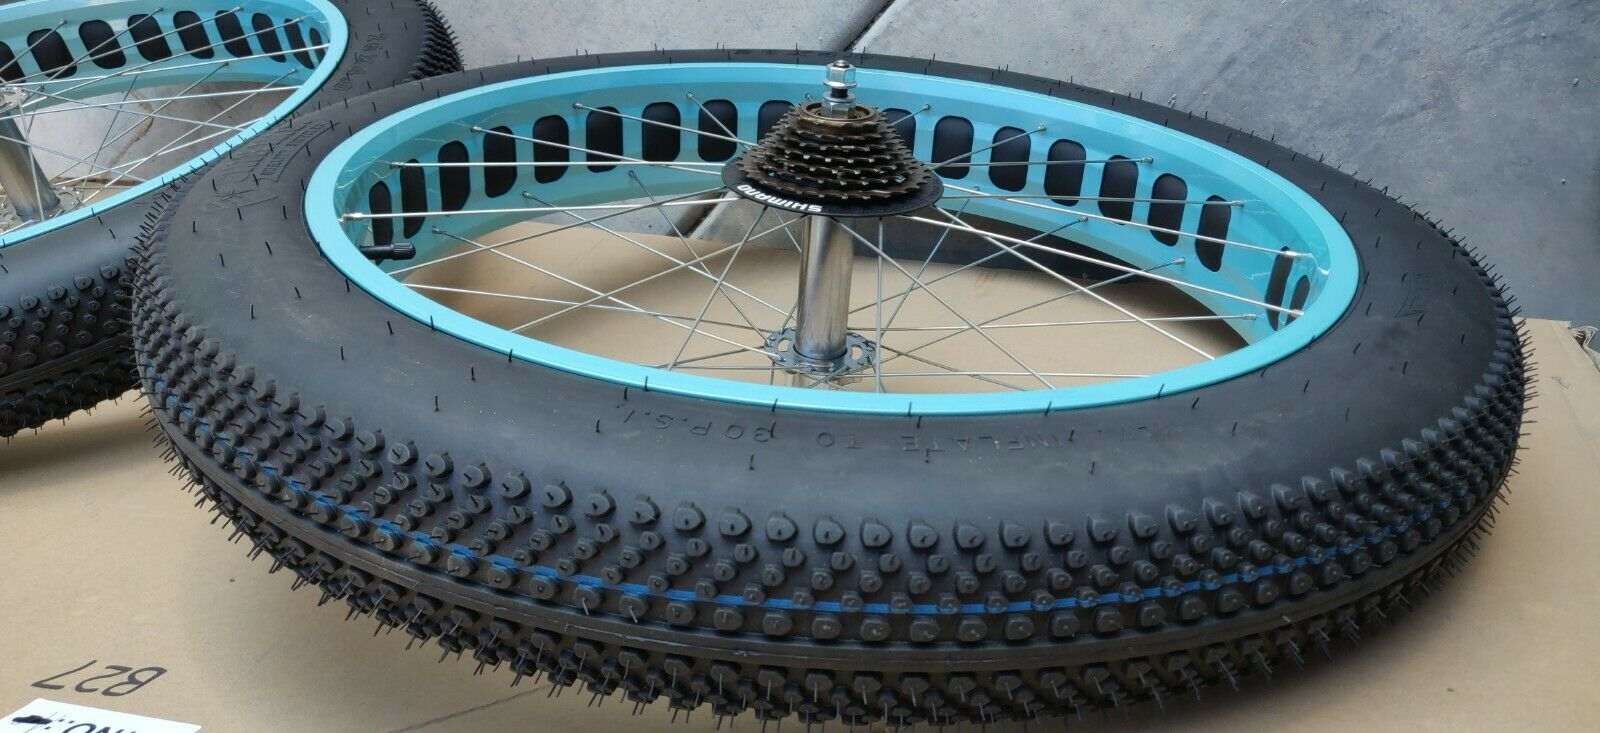 26X4 SIKK FAT TIRE BIKE RIMS AND TIRES- TEAL 7 SPEED